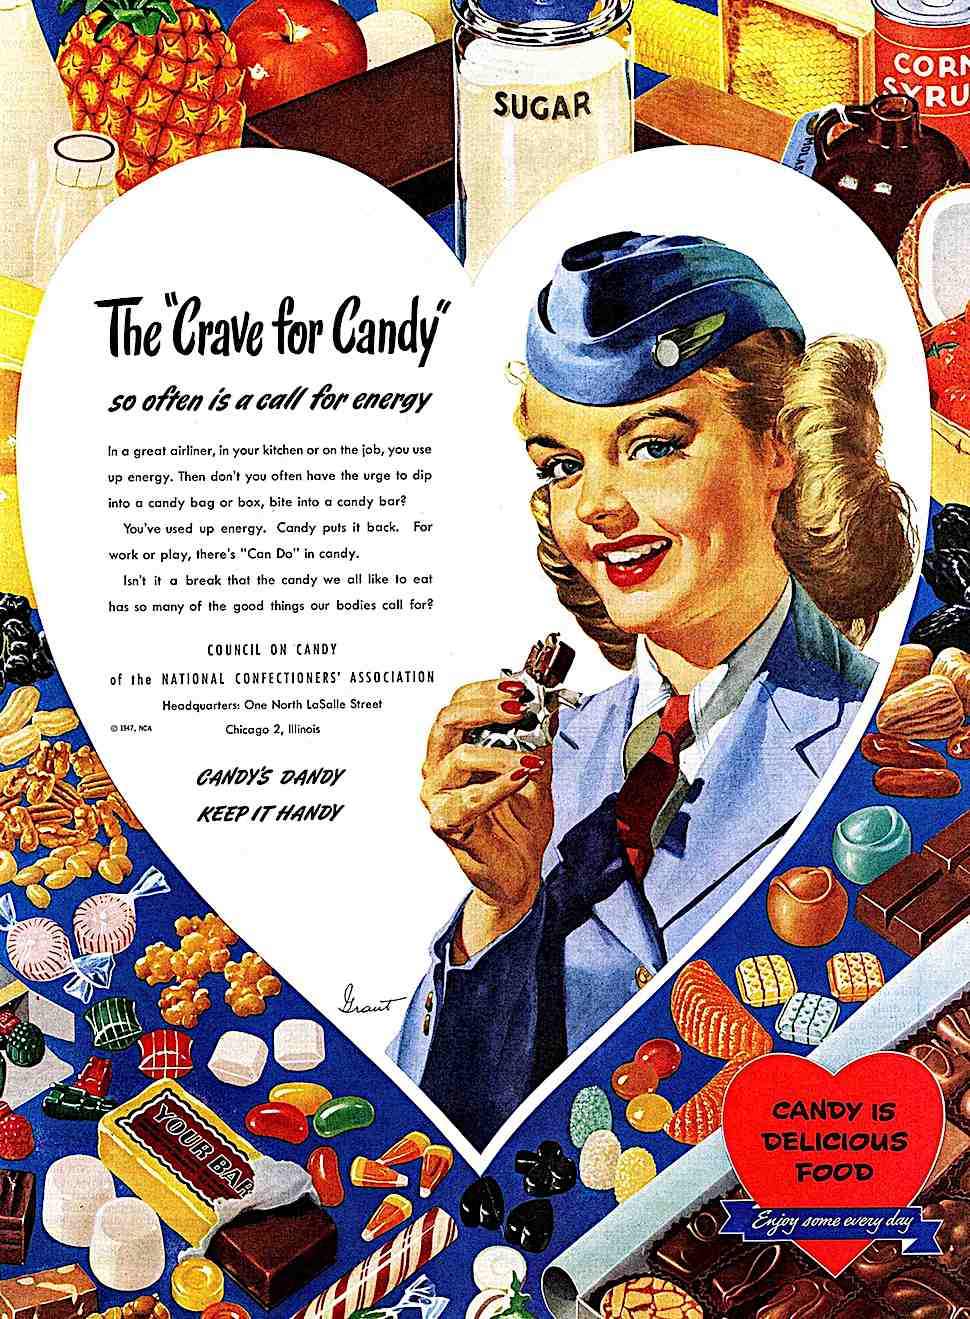 Candy's Dandy Keep It Handy 1947, Council On Candy of the National Confectioner's Association